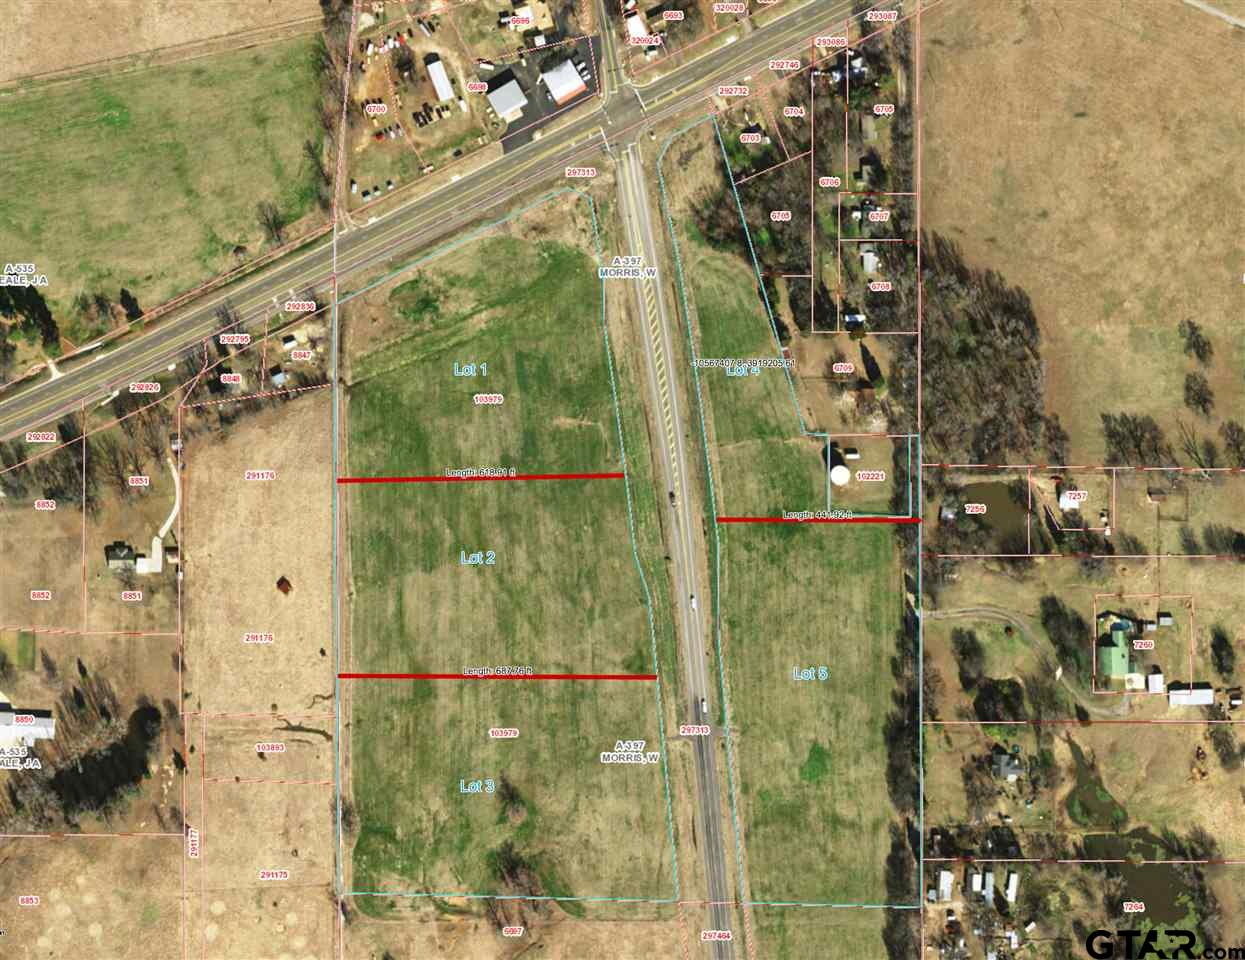 Lots 1-5. Looking for your next business endeavor? This is the perfect location to start or relocate any business. This package is for the purchase of the entire property, lots 1-5, approximately 32 acres. These properties have road frontage on both Hwy 67 & Hwy 2348. Give us a call today!